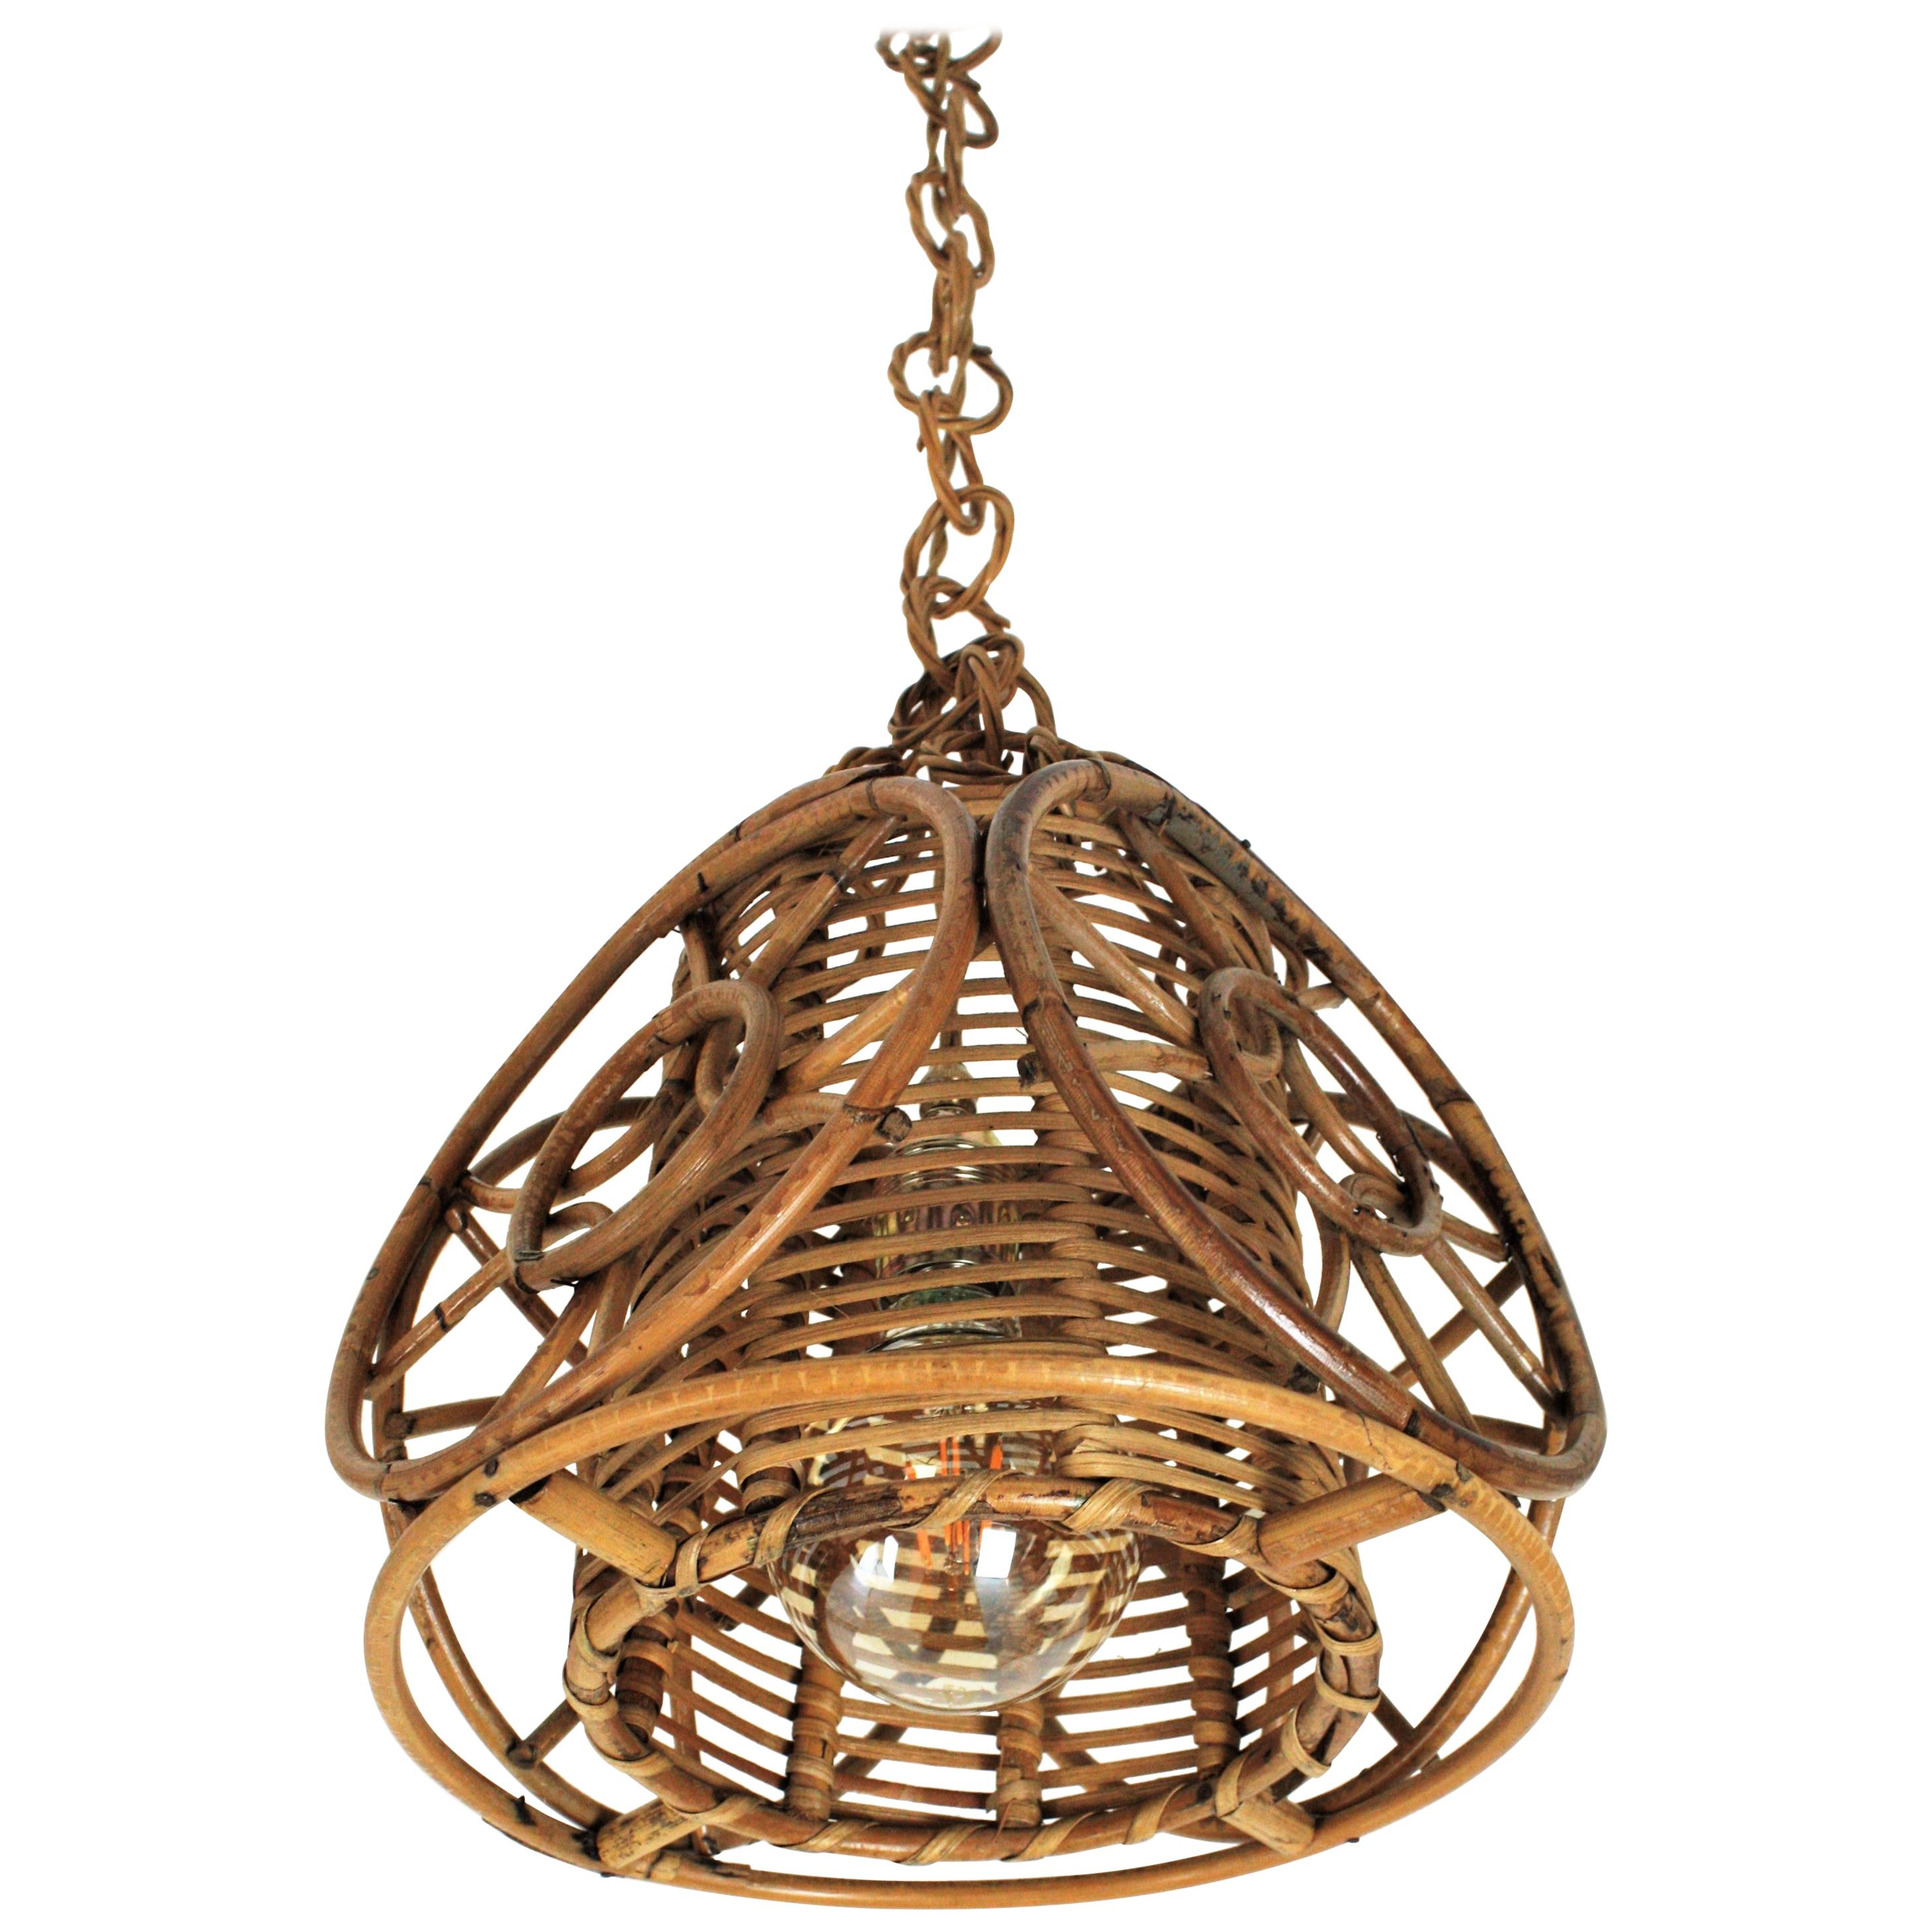 French Modernist Rattan and Wicker Pendant Hanging Lamp with Circle Decorations